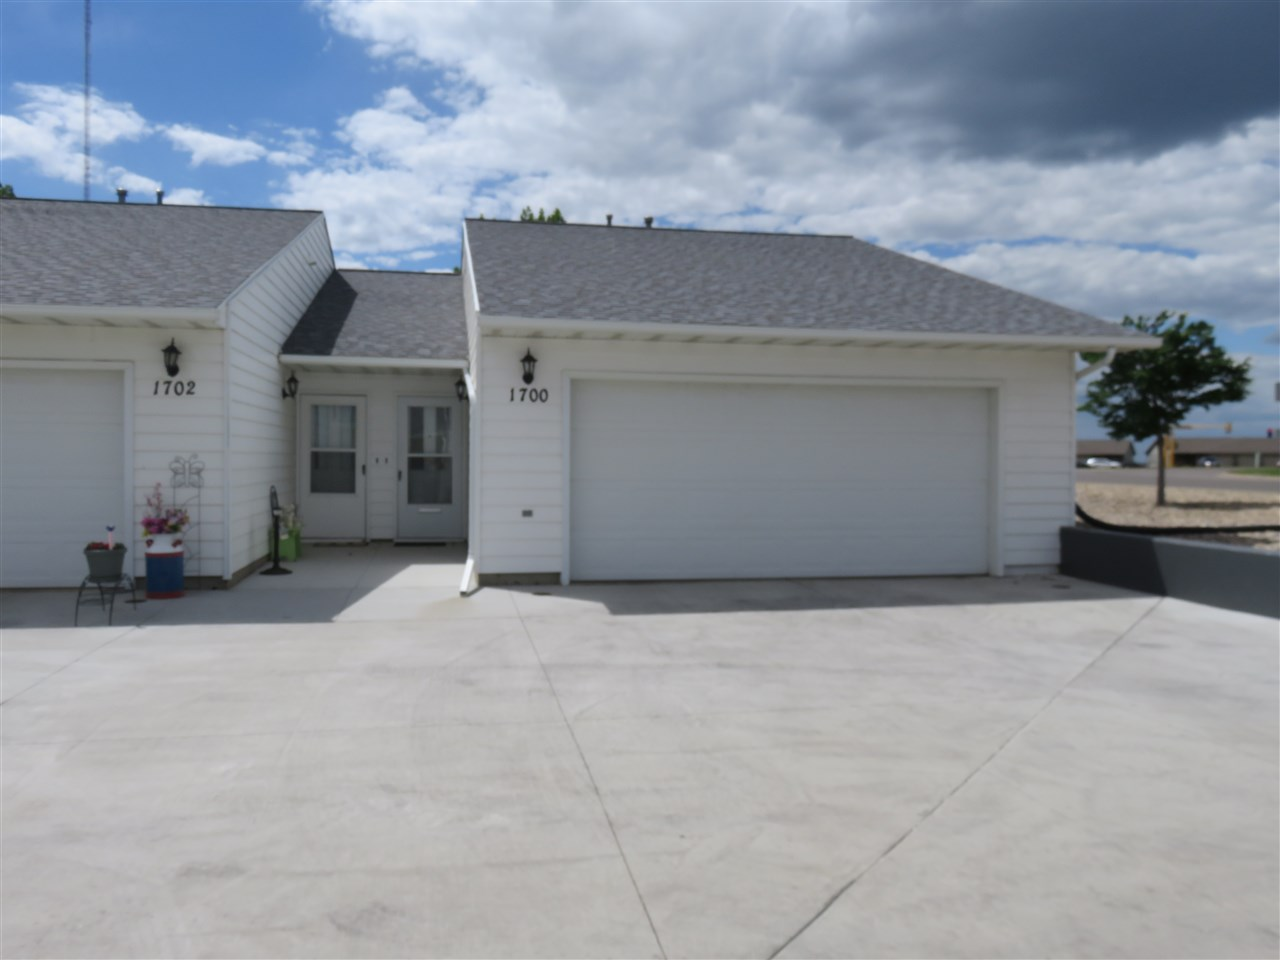 1700 14TH ST SW, Minot, ND 58701